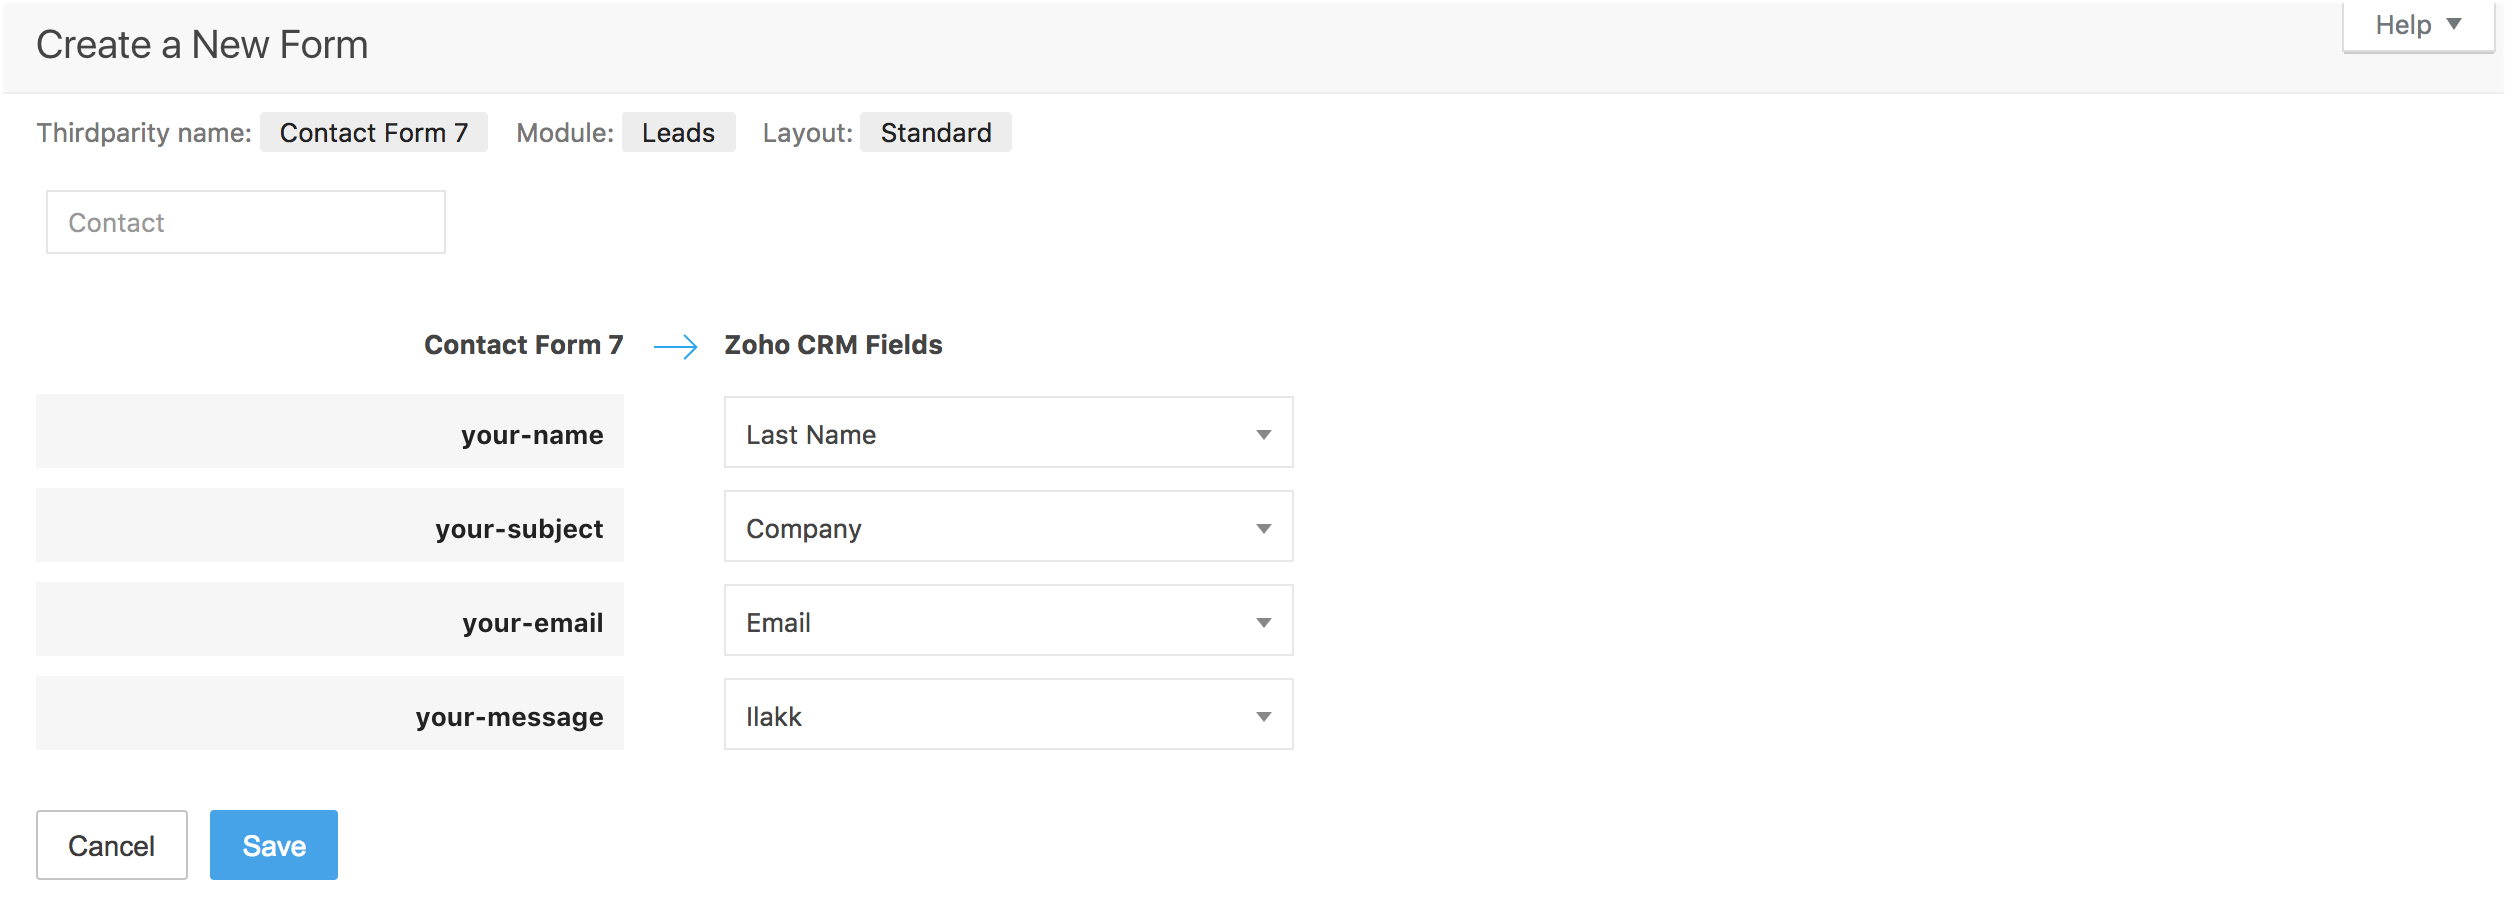 Mapping fields with Contact Form 7